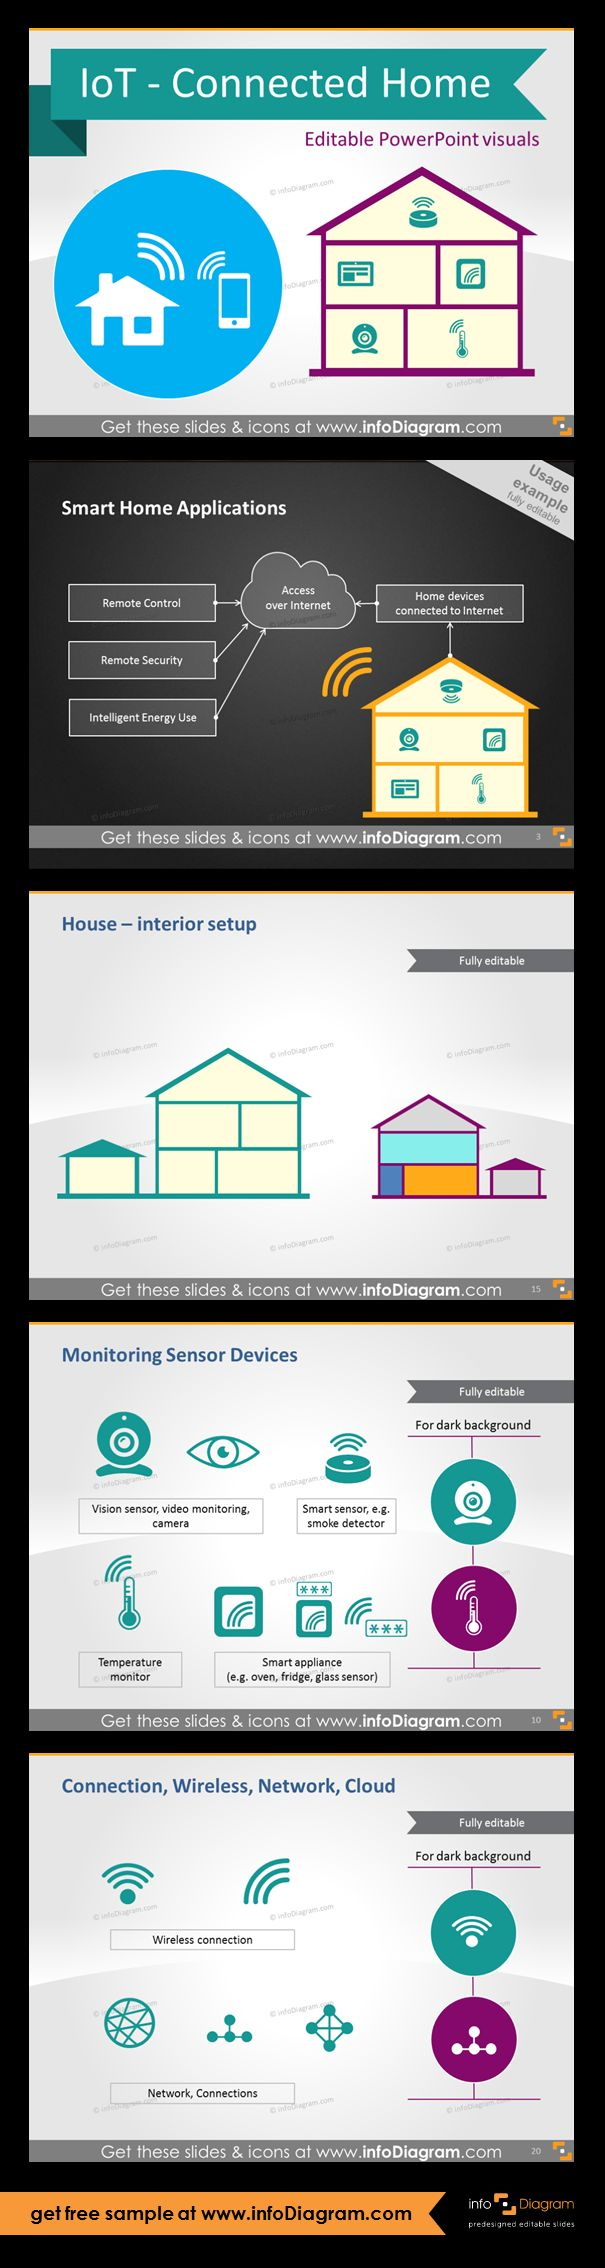 IoT - Connected home graphics. House - interior setup, editable. Monitoring sensors device: vision sensor, video monitoring, camera, smart sensor, smoke detector. Connection symbols: Wireless, Wi-Fi, network. Process diagram and connections schema of Smart Home Applications.